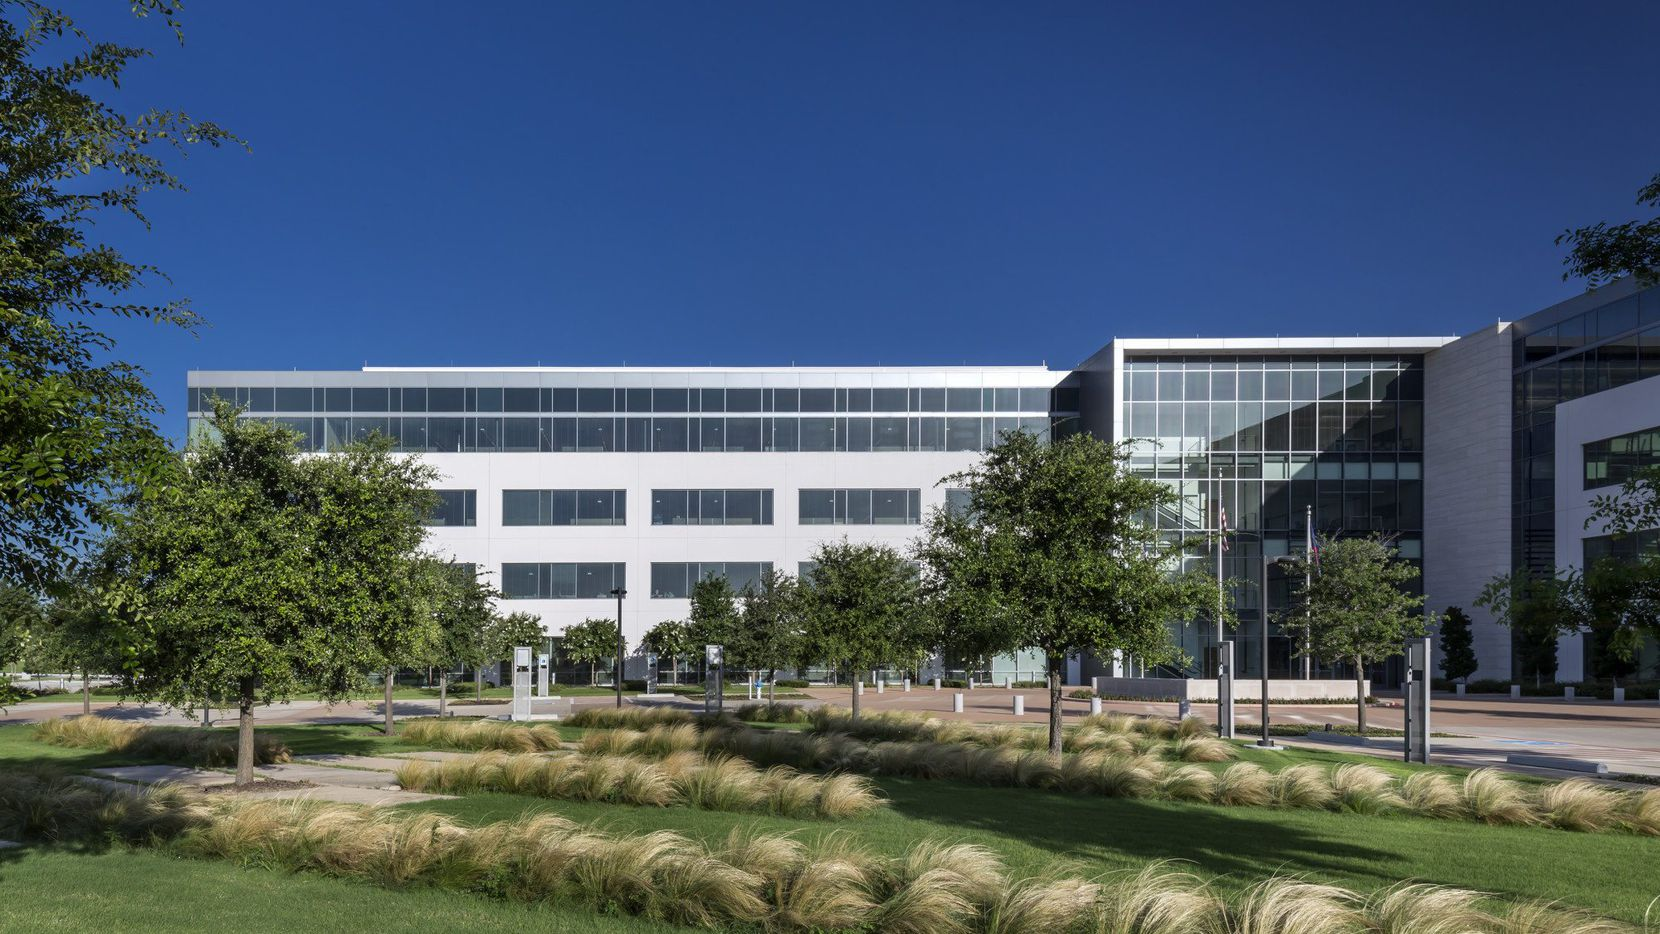 USAA has leased the former MedAssets campus which was built in 2012.